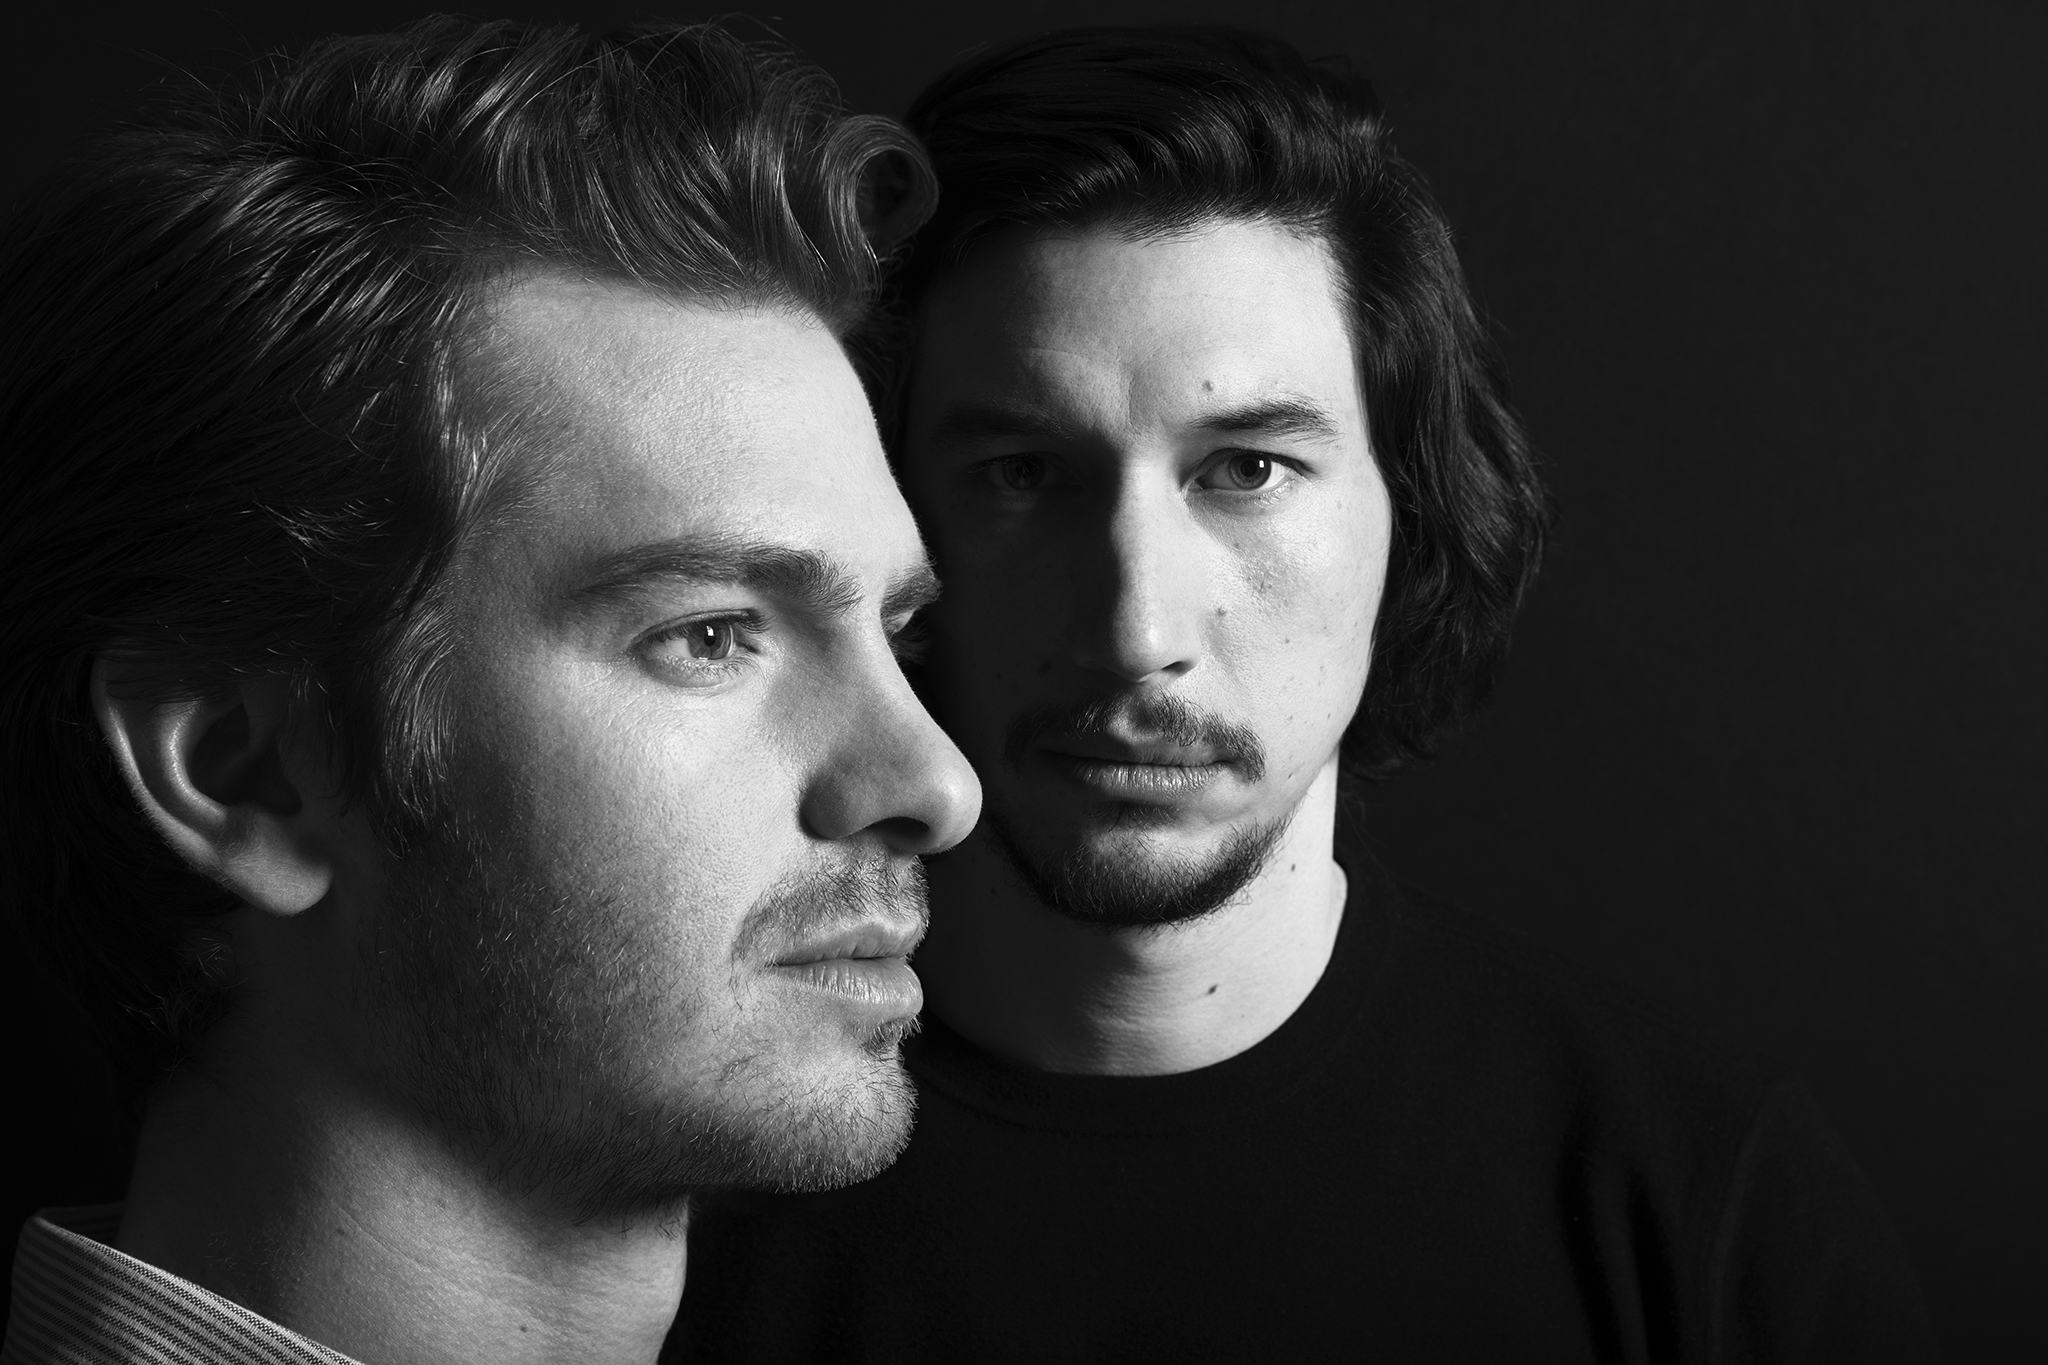 'Silence' stars Adam Driver and Andrew Garfield